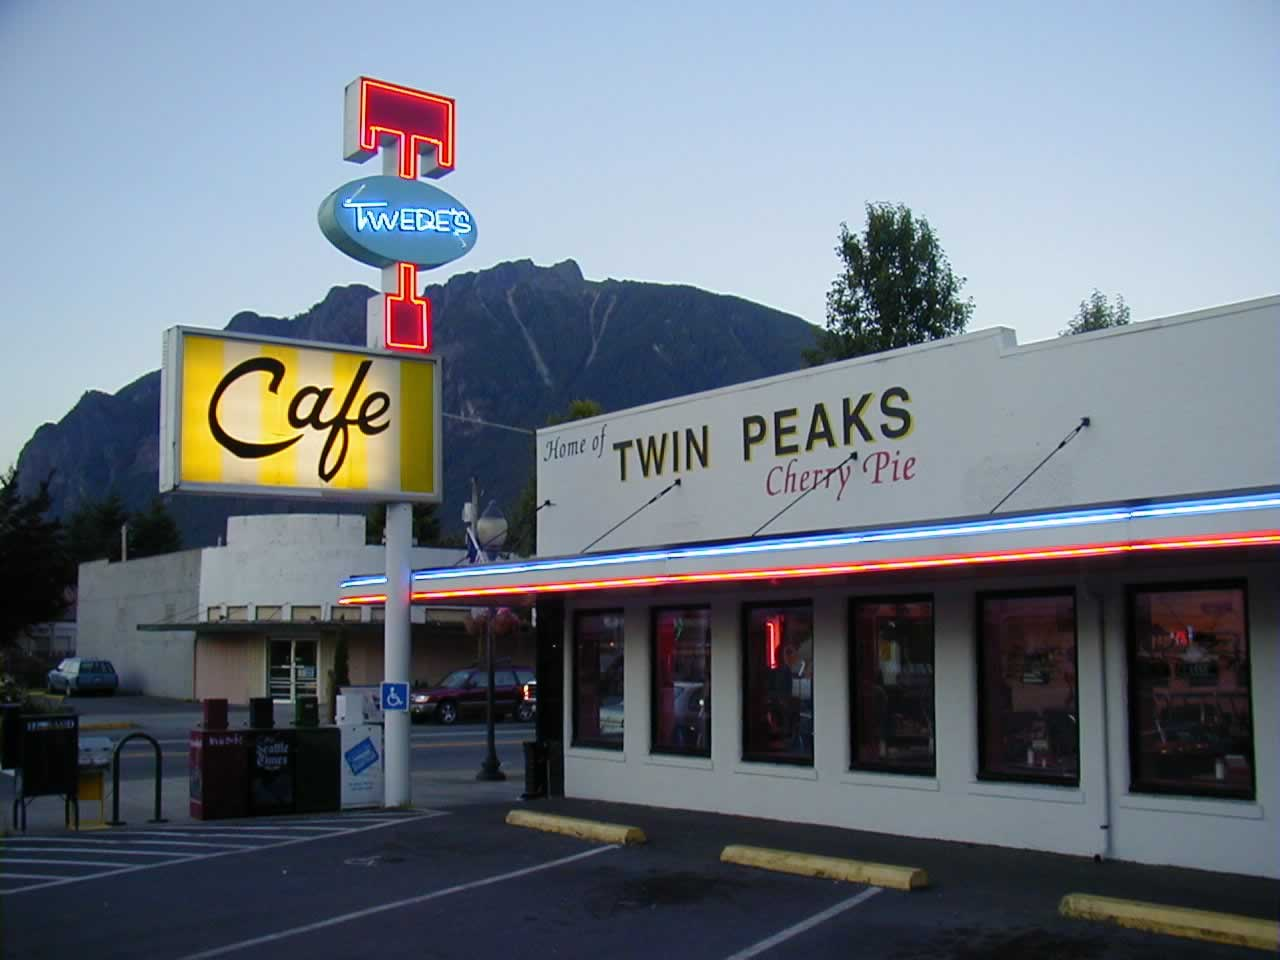 Seattle travel guide SIA - twedes cafe twin peaks double r